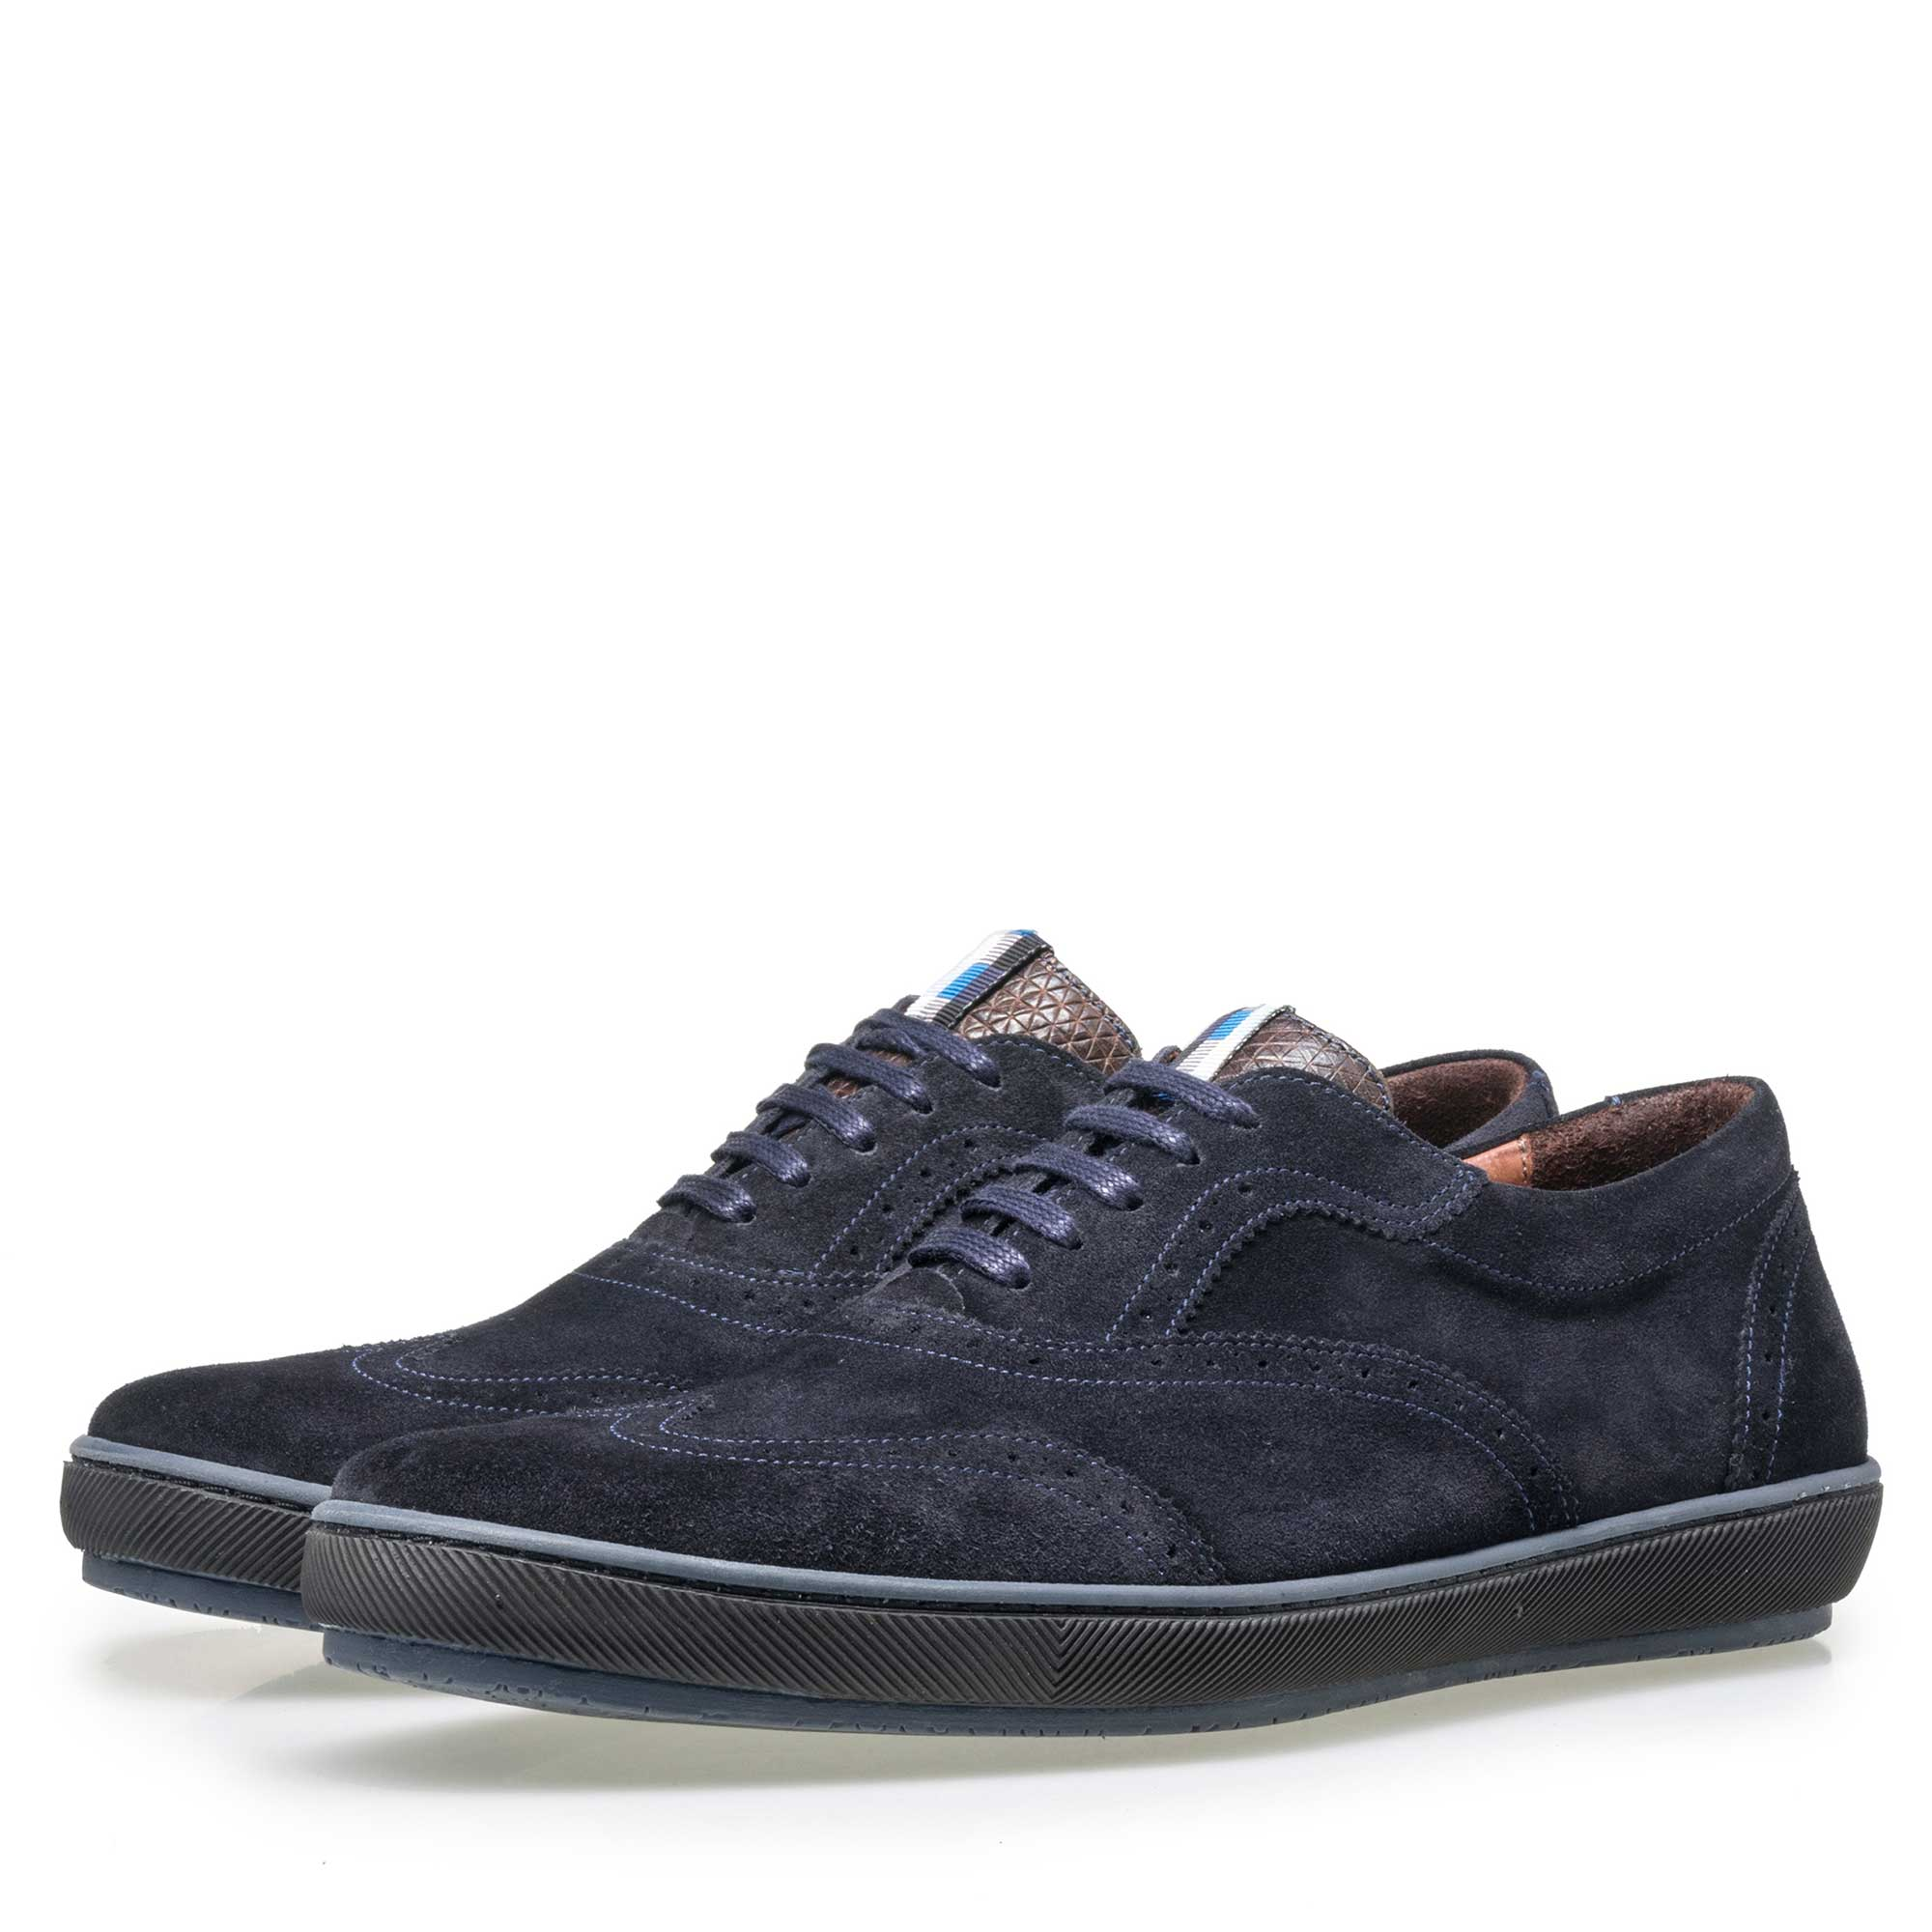 19036/31 - Floris van Bommel men's dark blue suede brogue lace shoe